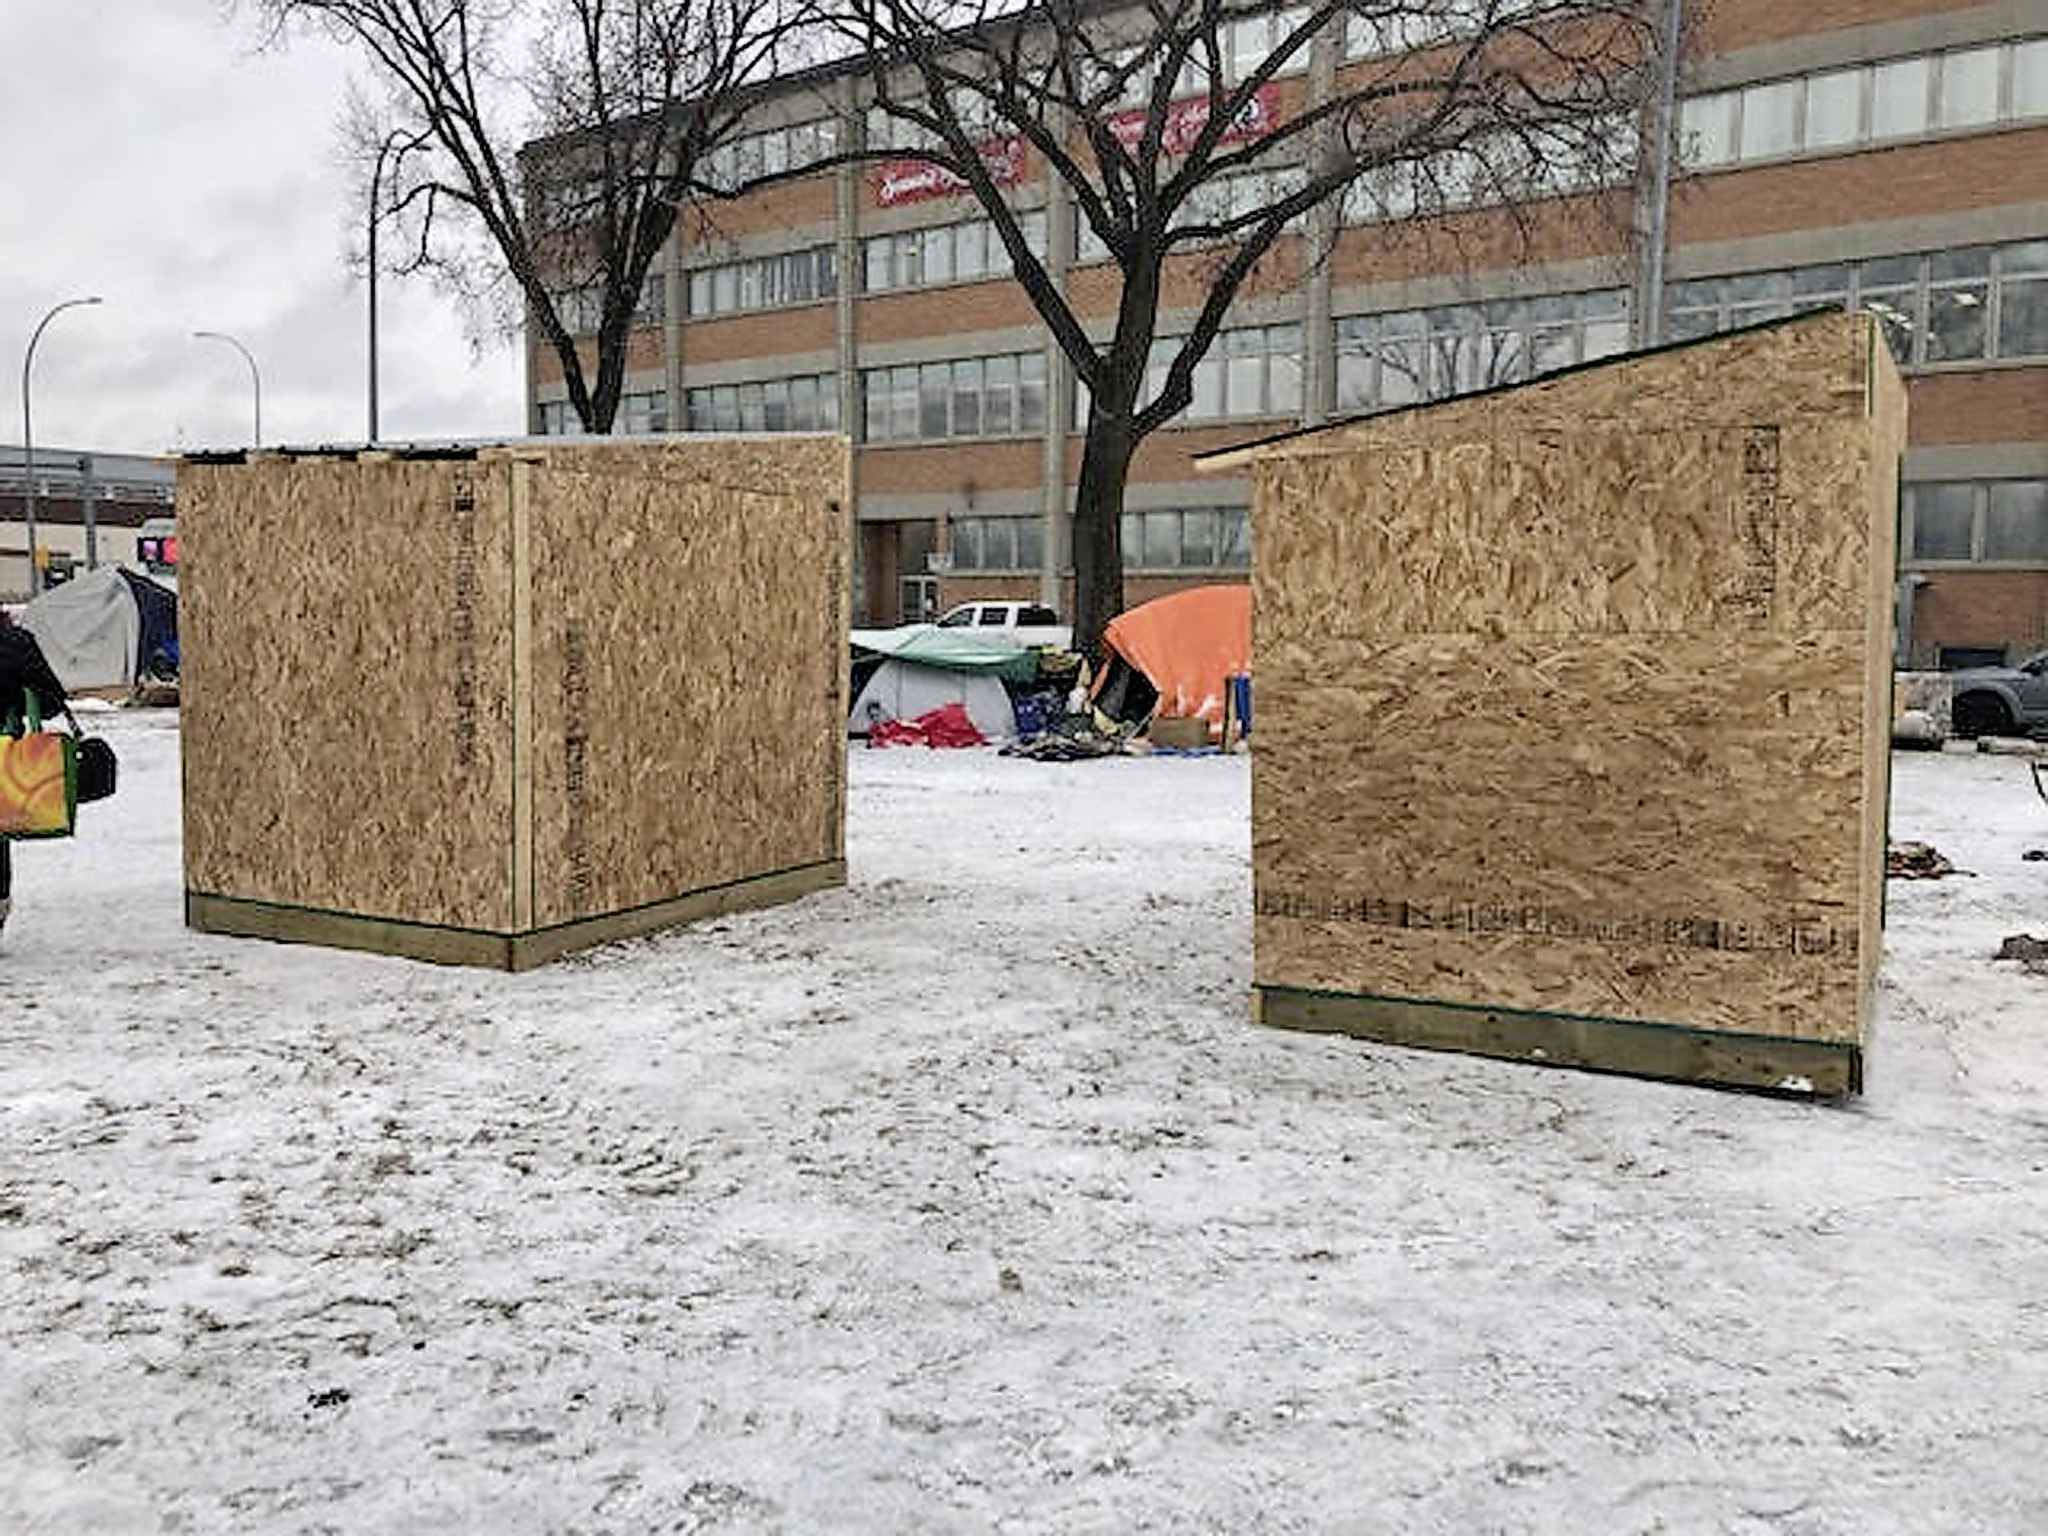 Earlier this year, Urban Knights and Ladies Veterans Ambassador Peace Patrol enlisted a carpentry class at a high school in Stonewall to build a pair of warming huts, to be placed in Winnipeg where they might be of good use to homeless people.  The two small wooden huts were placed near the Disraeli Freeway but quickly removed by WPS over concerns for liability and the safety of people who might use them. (Supplied)